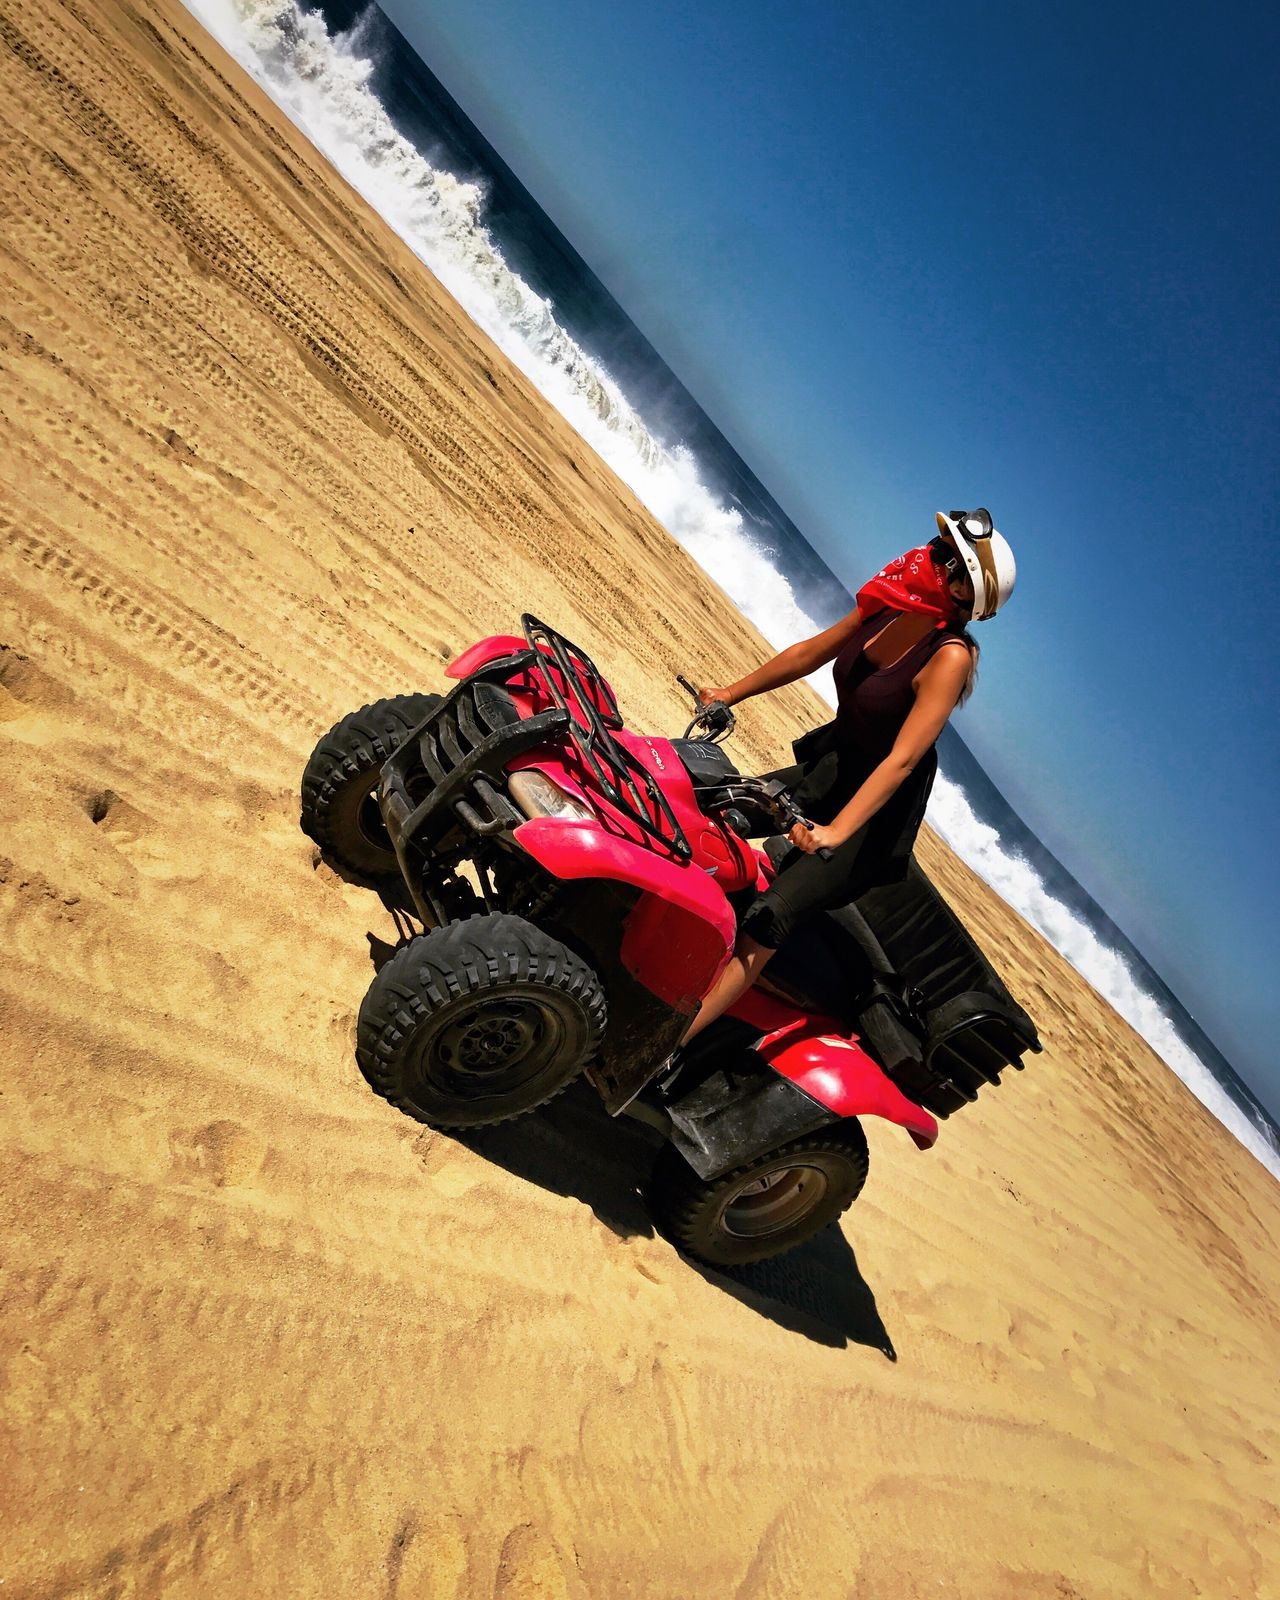 Adventure Extreme Sports One Person Leisure Activity Day Sport Outdoors Nature Young Adult Motorsport Adrenaline Junkie Adrenalin Effort Determination Ocean Waves ATV Ride Squad Vacations